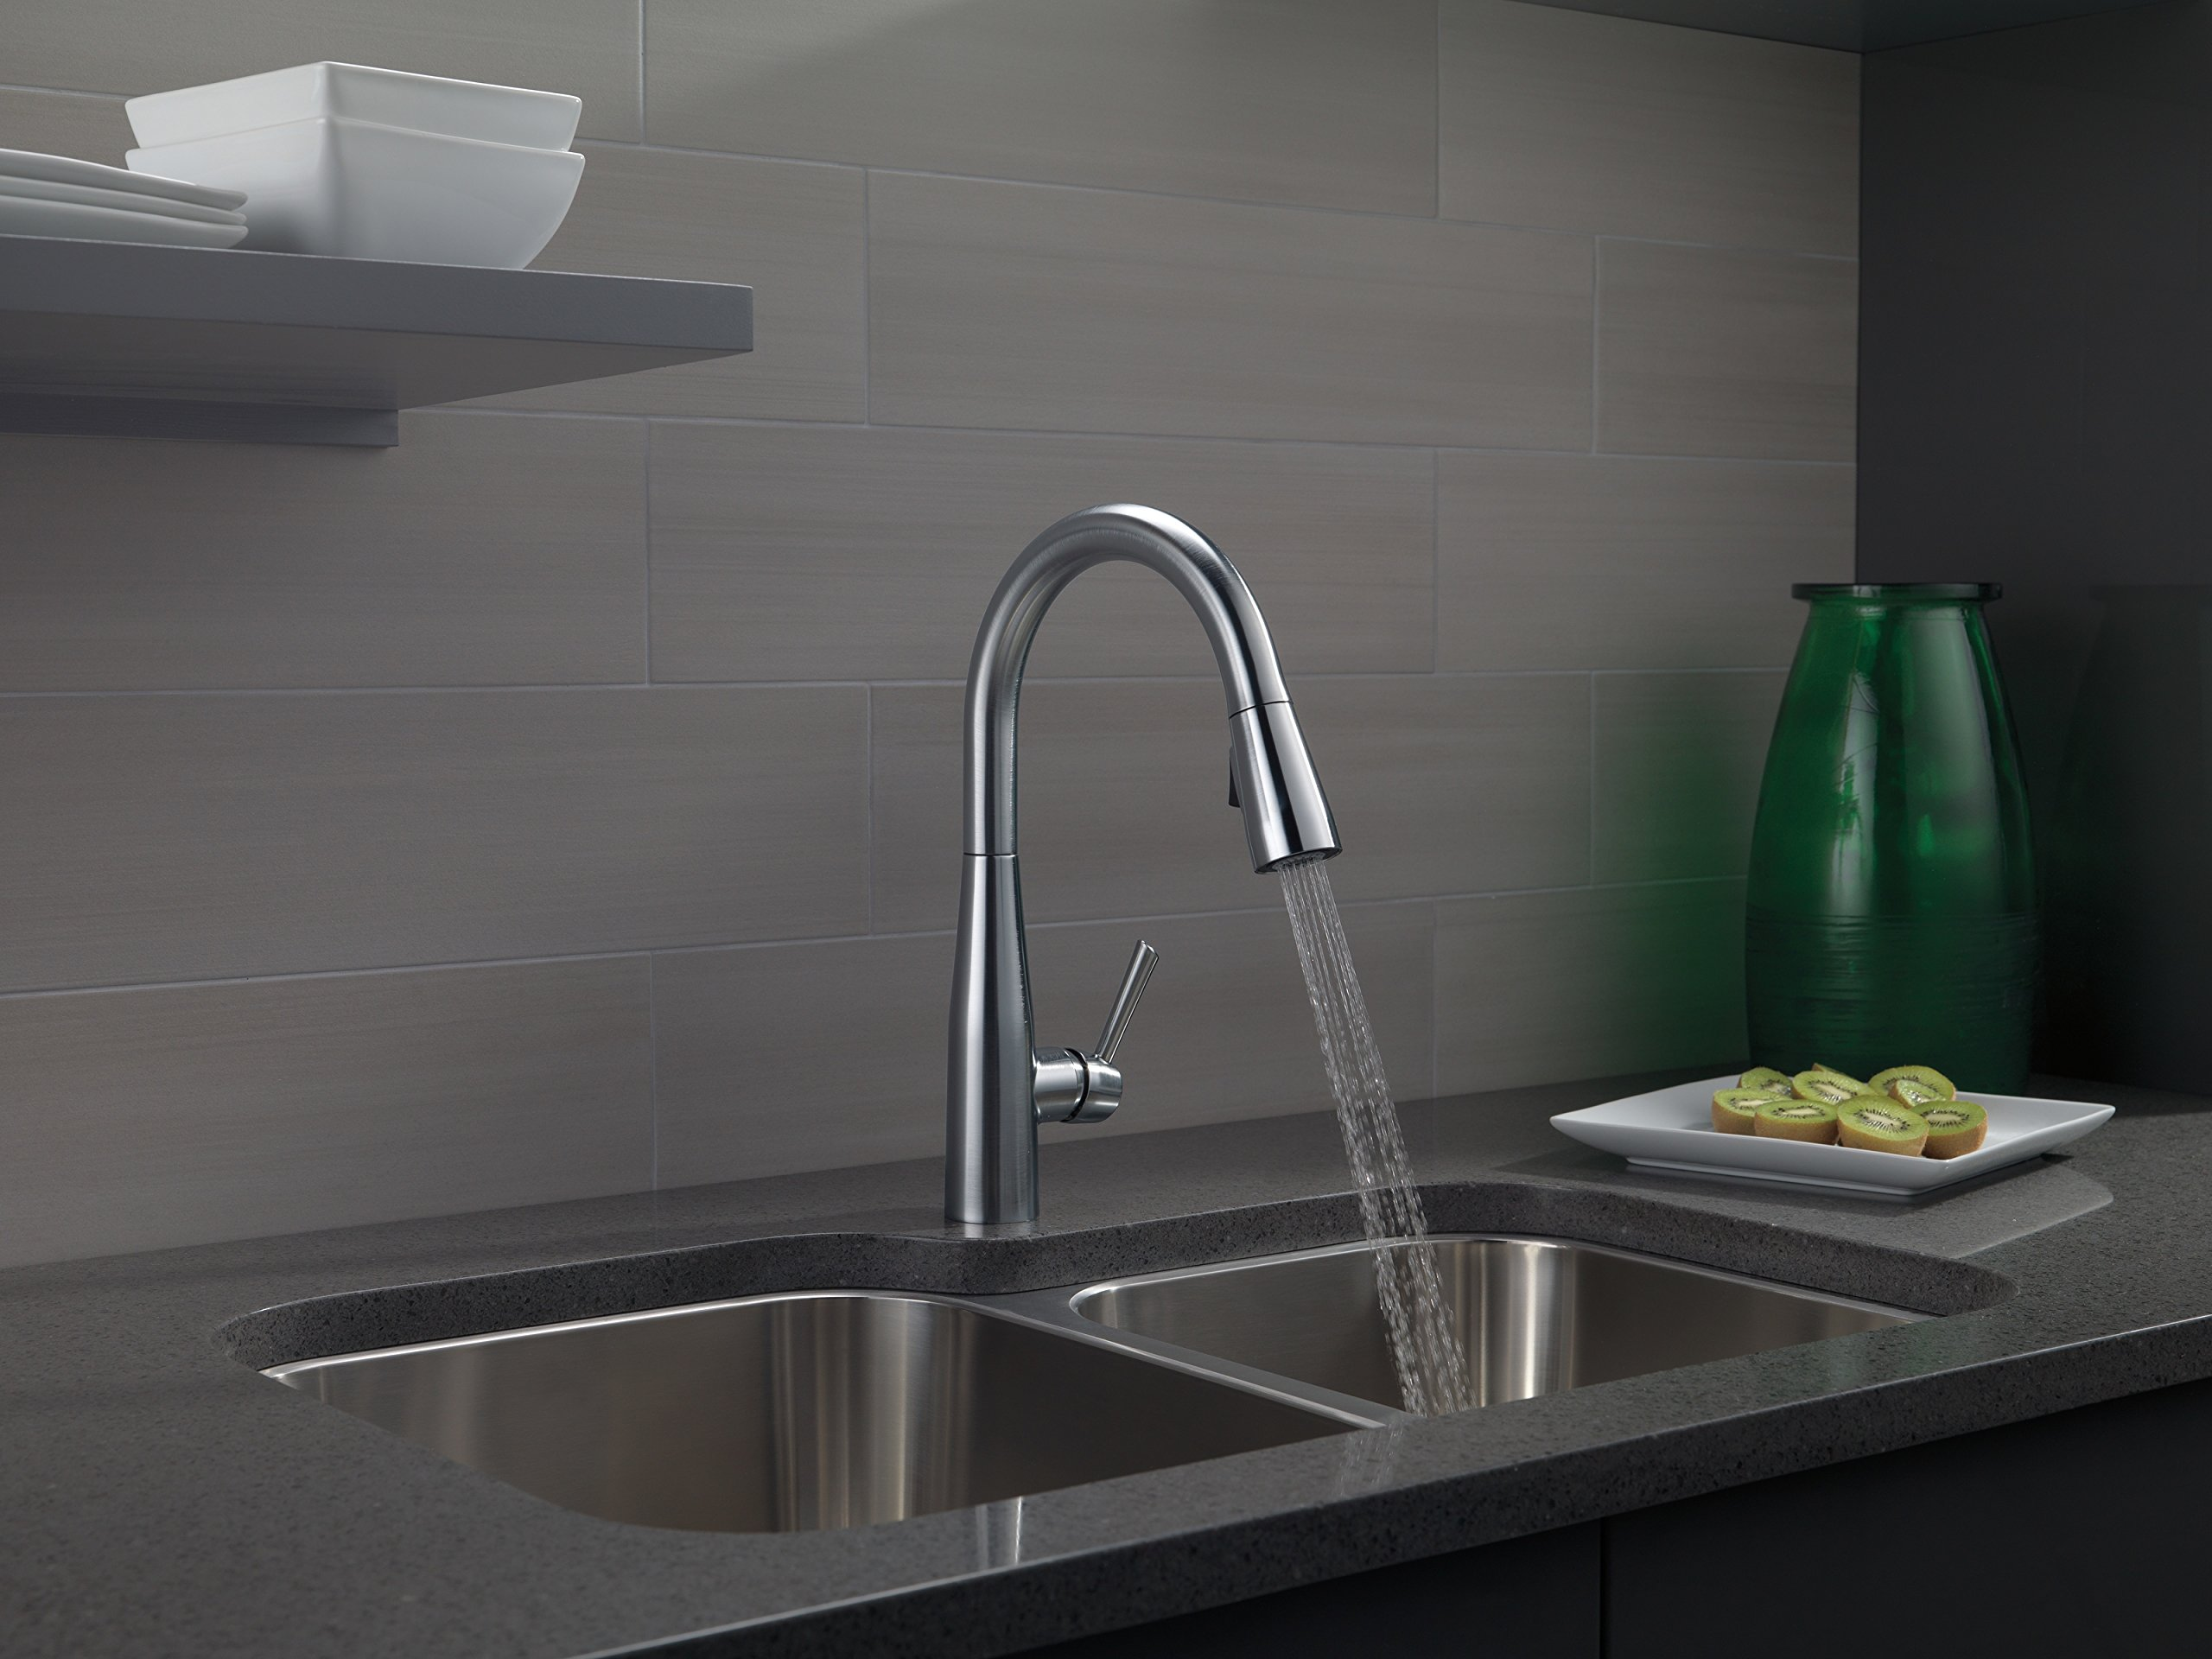 Delta Faucet Essa Single-Handle Kitchen Sink Faucet with Pull Down Sprayer and Magnetic Docking Spray Head, Arctic Stainless 9113-AR-DST by DELTA FAUCET (Image #5)